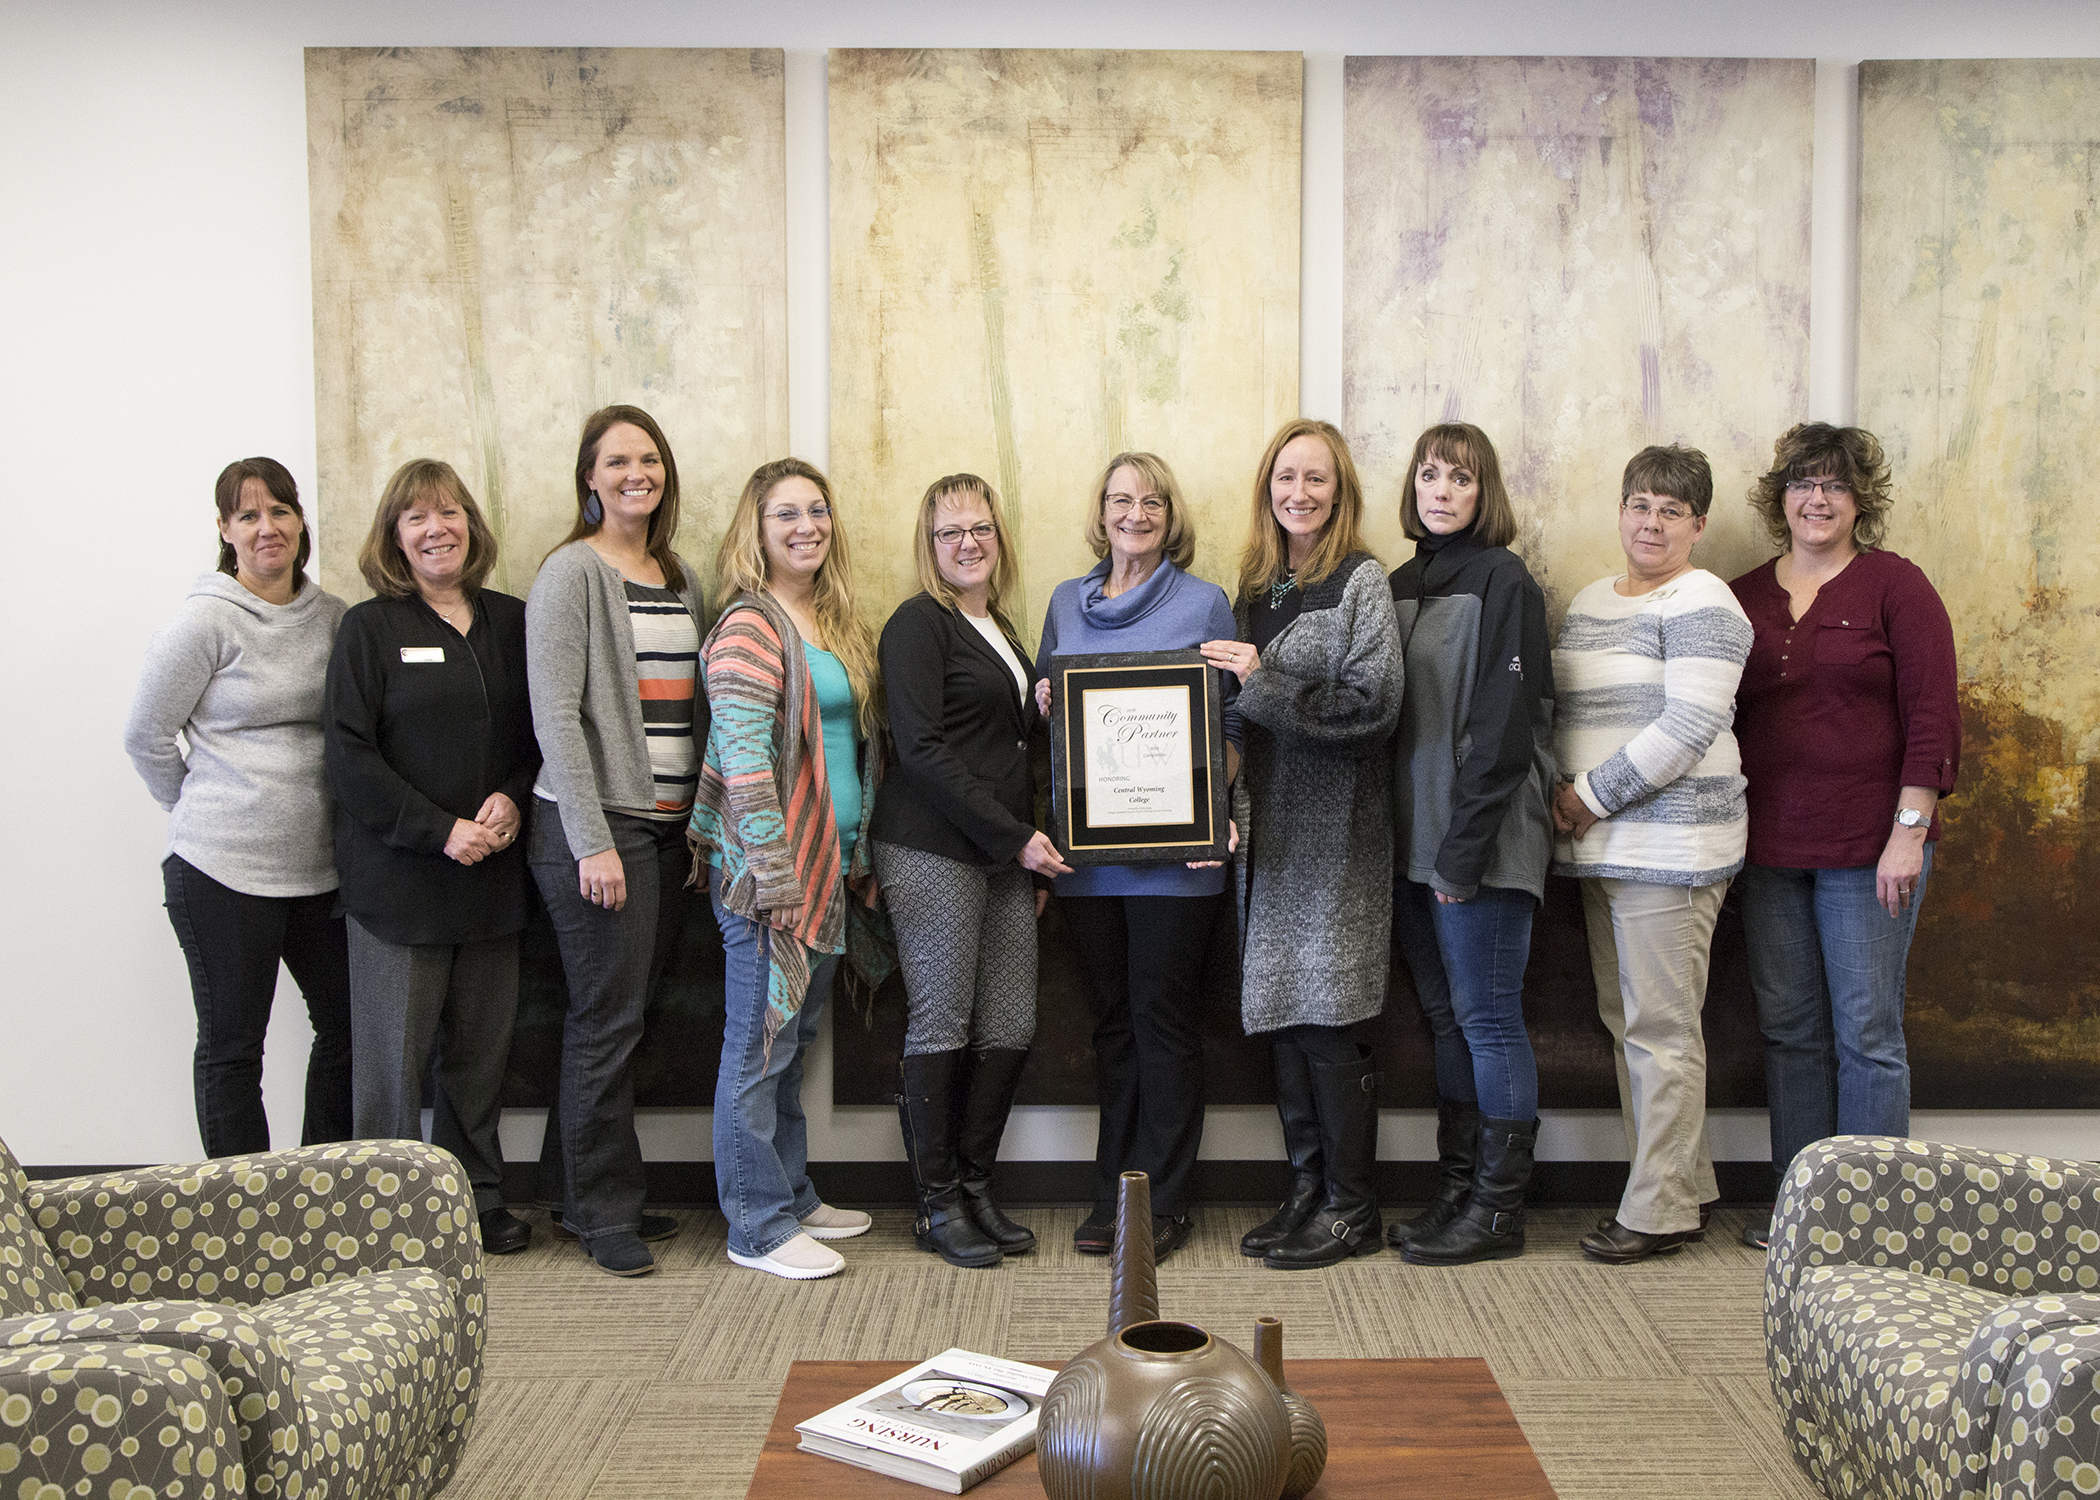 The CWC nursing staff stands holding an award from UW